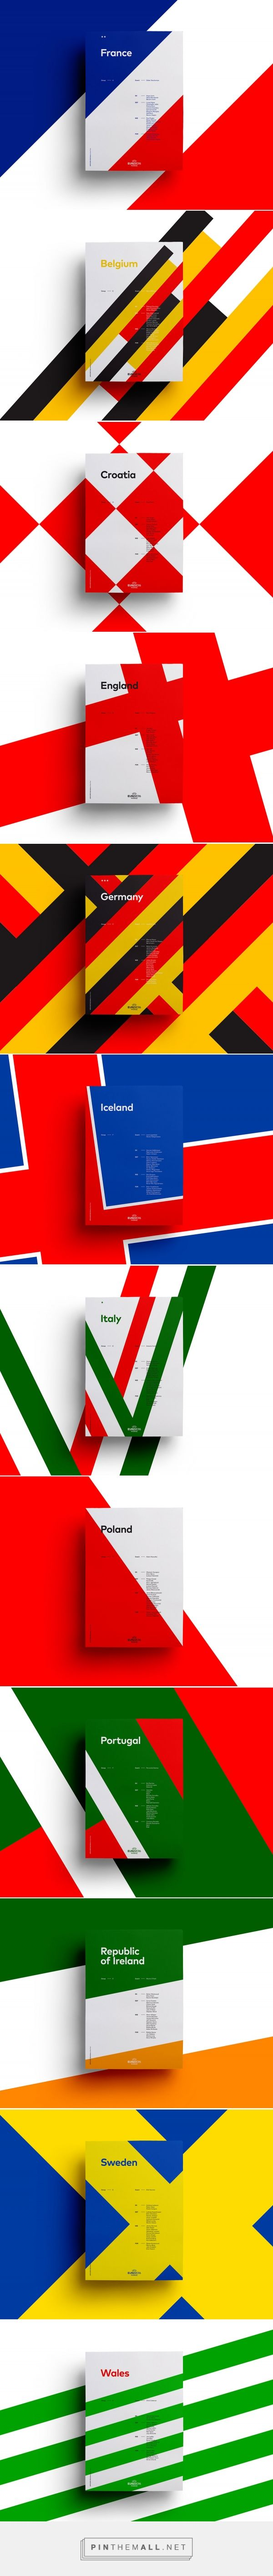 UEFA EURO 2016 Poster Series by Sean Ford | Inspiration Grid | Design Inspiration - created via https://pinthemall.net